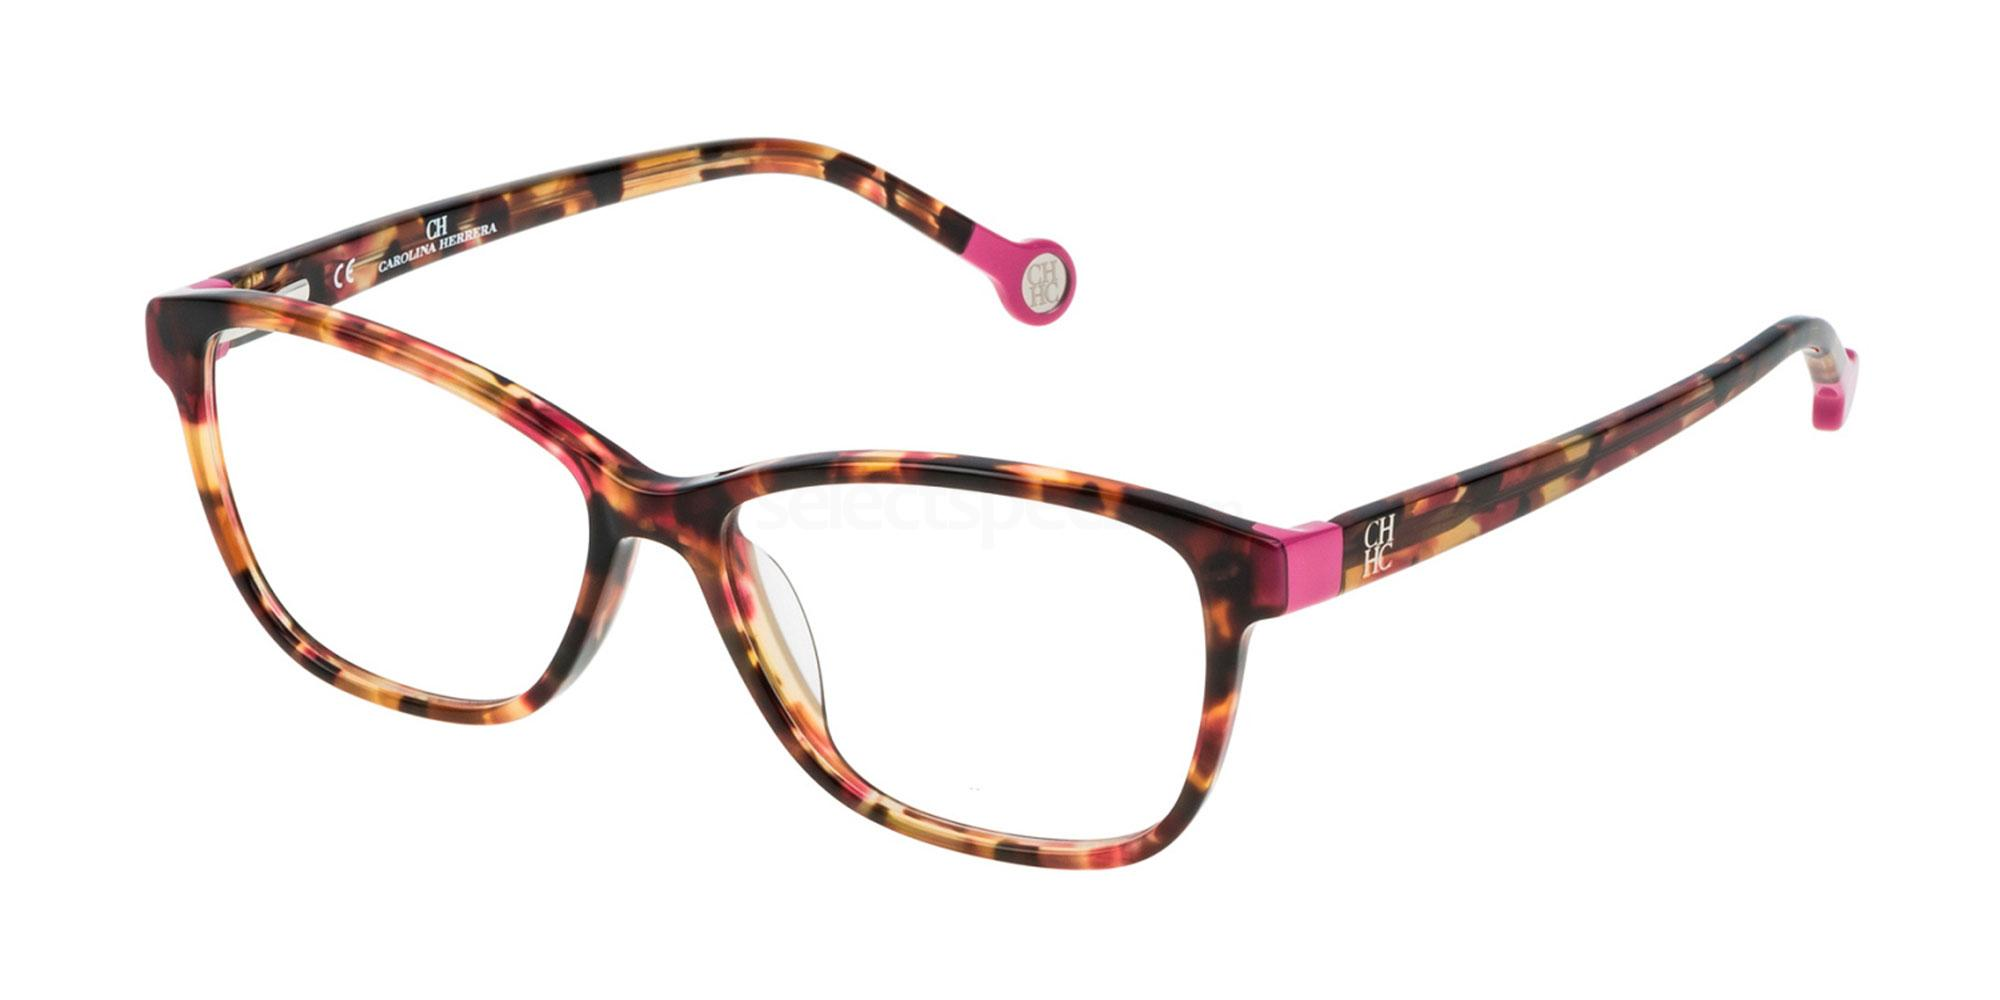 01GQ VHE679 Glasses, CH Carolina Herrera